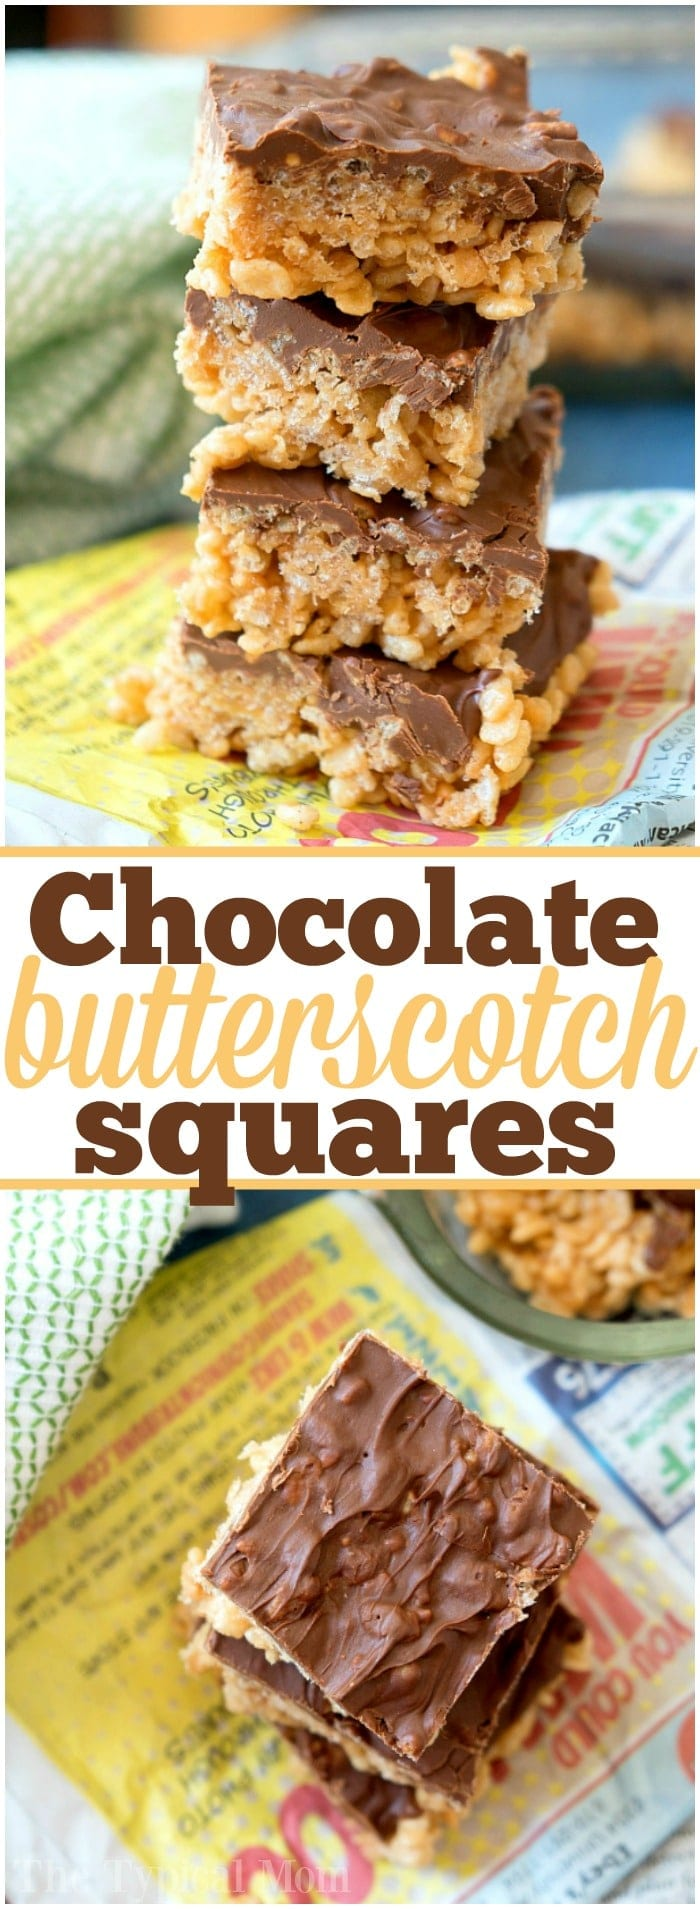 No bake recipe for Scotcheroos are the best peanut butter and butterscotch dessert recipe ever that has chocolate in it too. Super easy to make with cereal. #scotcheroos #nobake #dessert #peanutbutter #butterscotch #ricekrispytreats #thetypicalmom